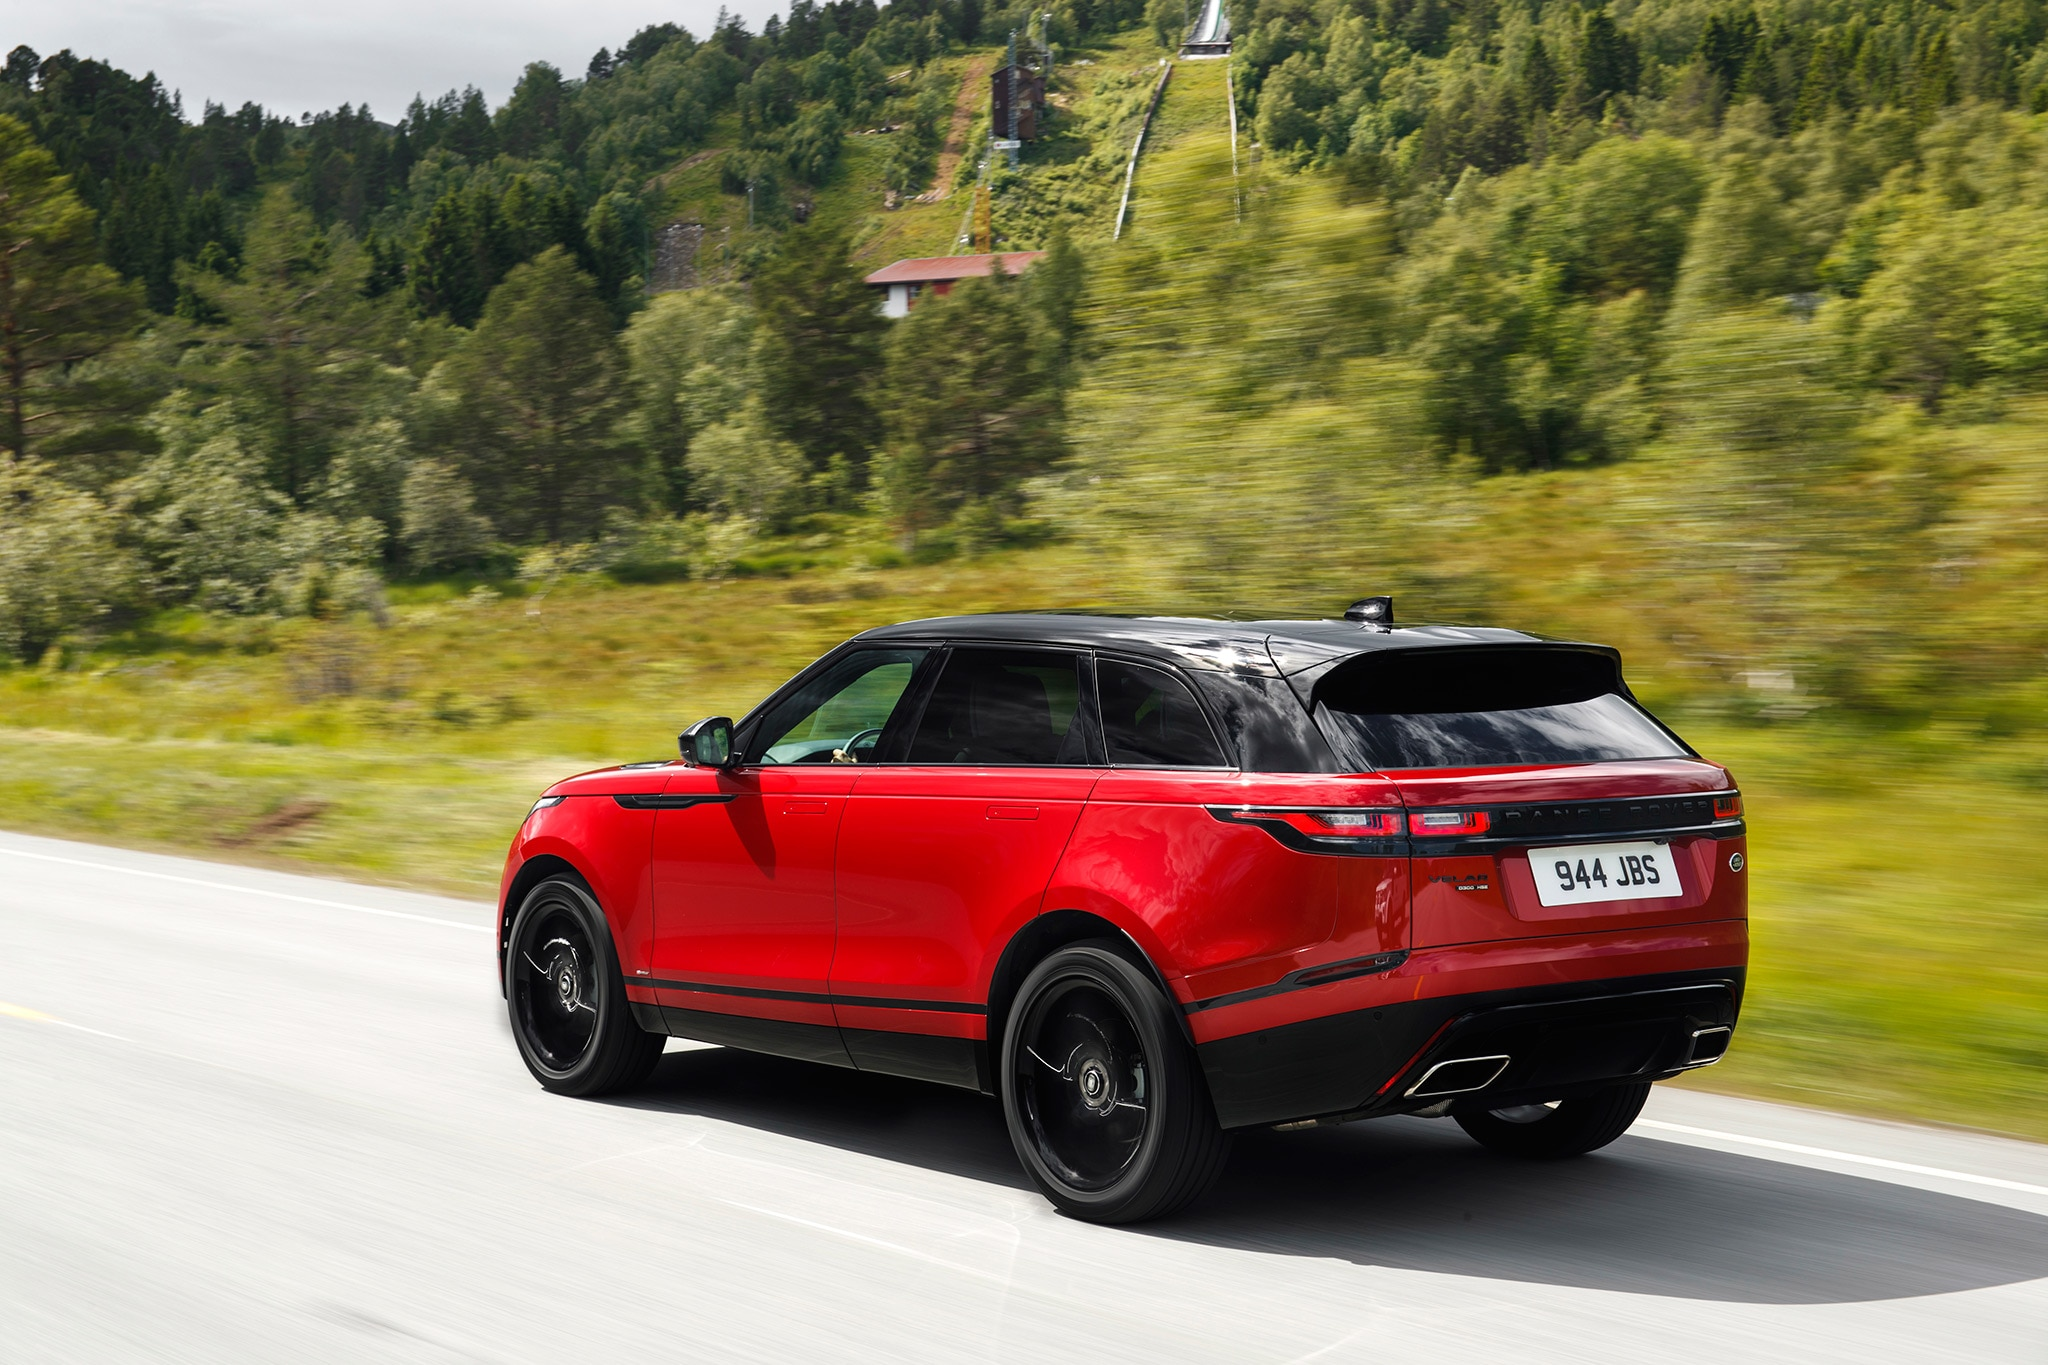 2018 land rover car. interesting land show more with 2018 land rover car